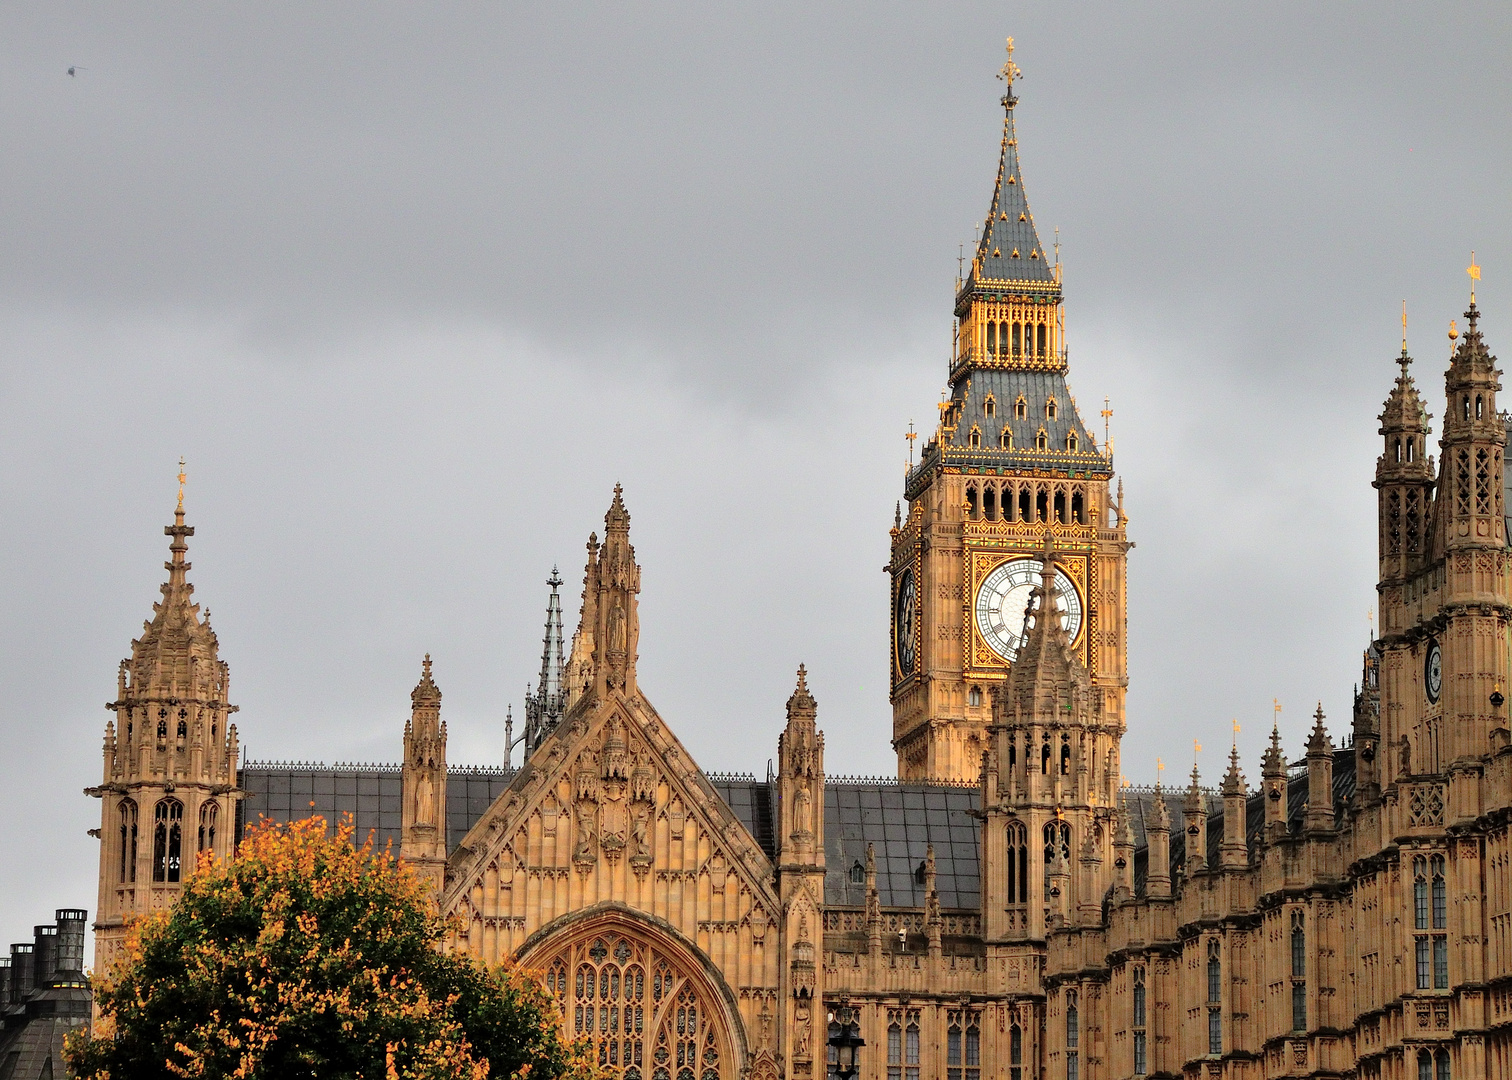 Big Ben and House of Parlament